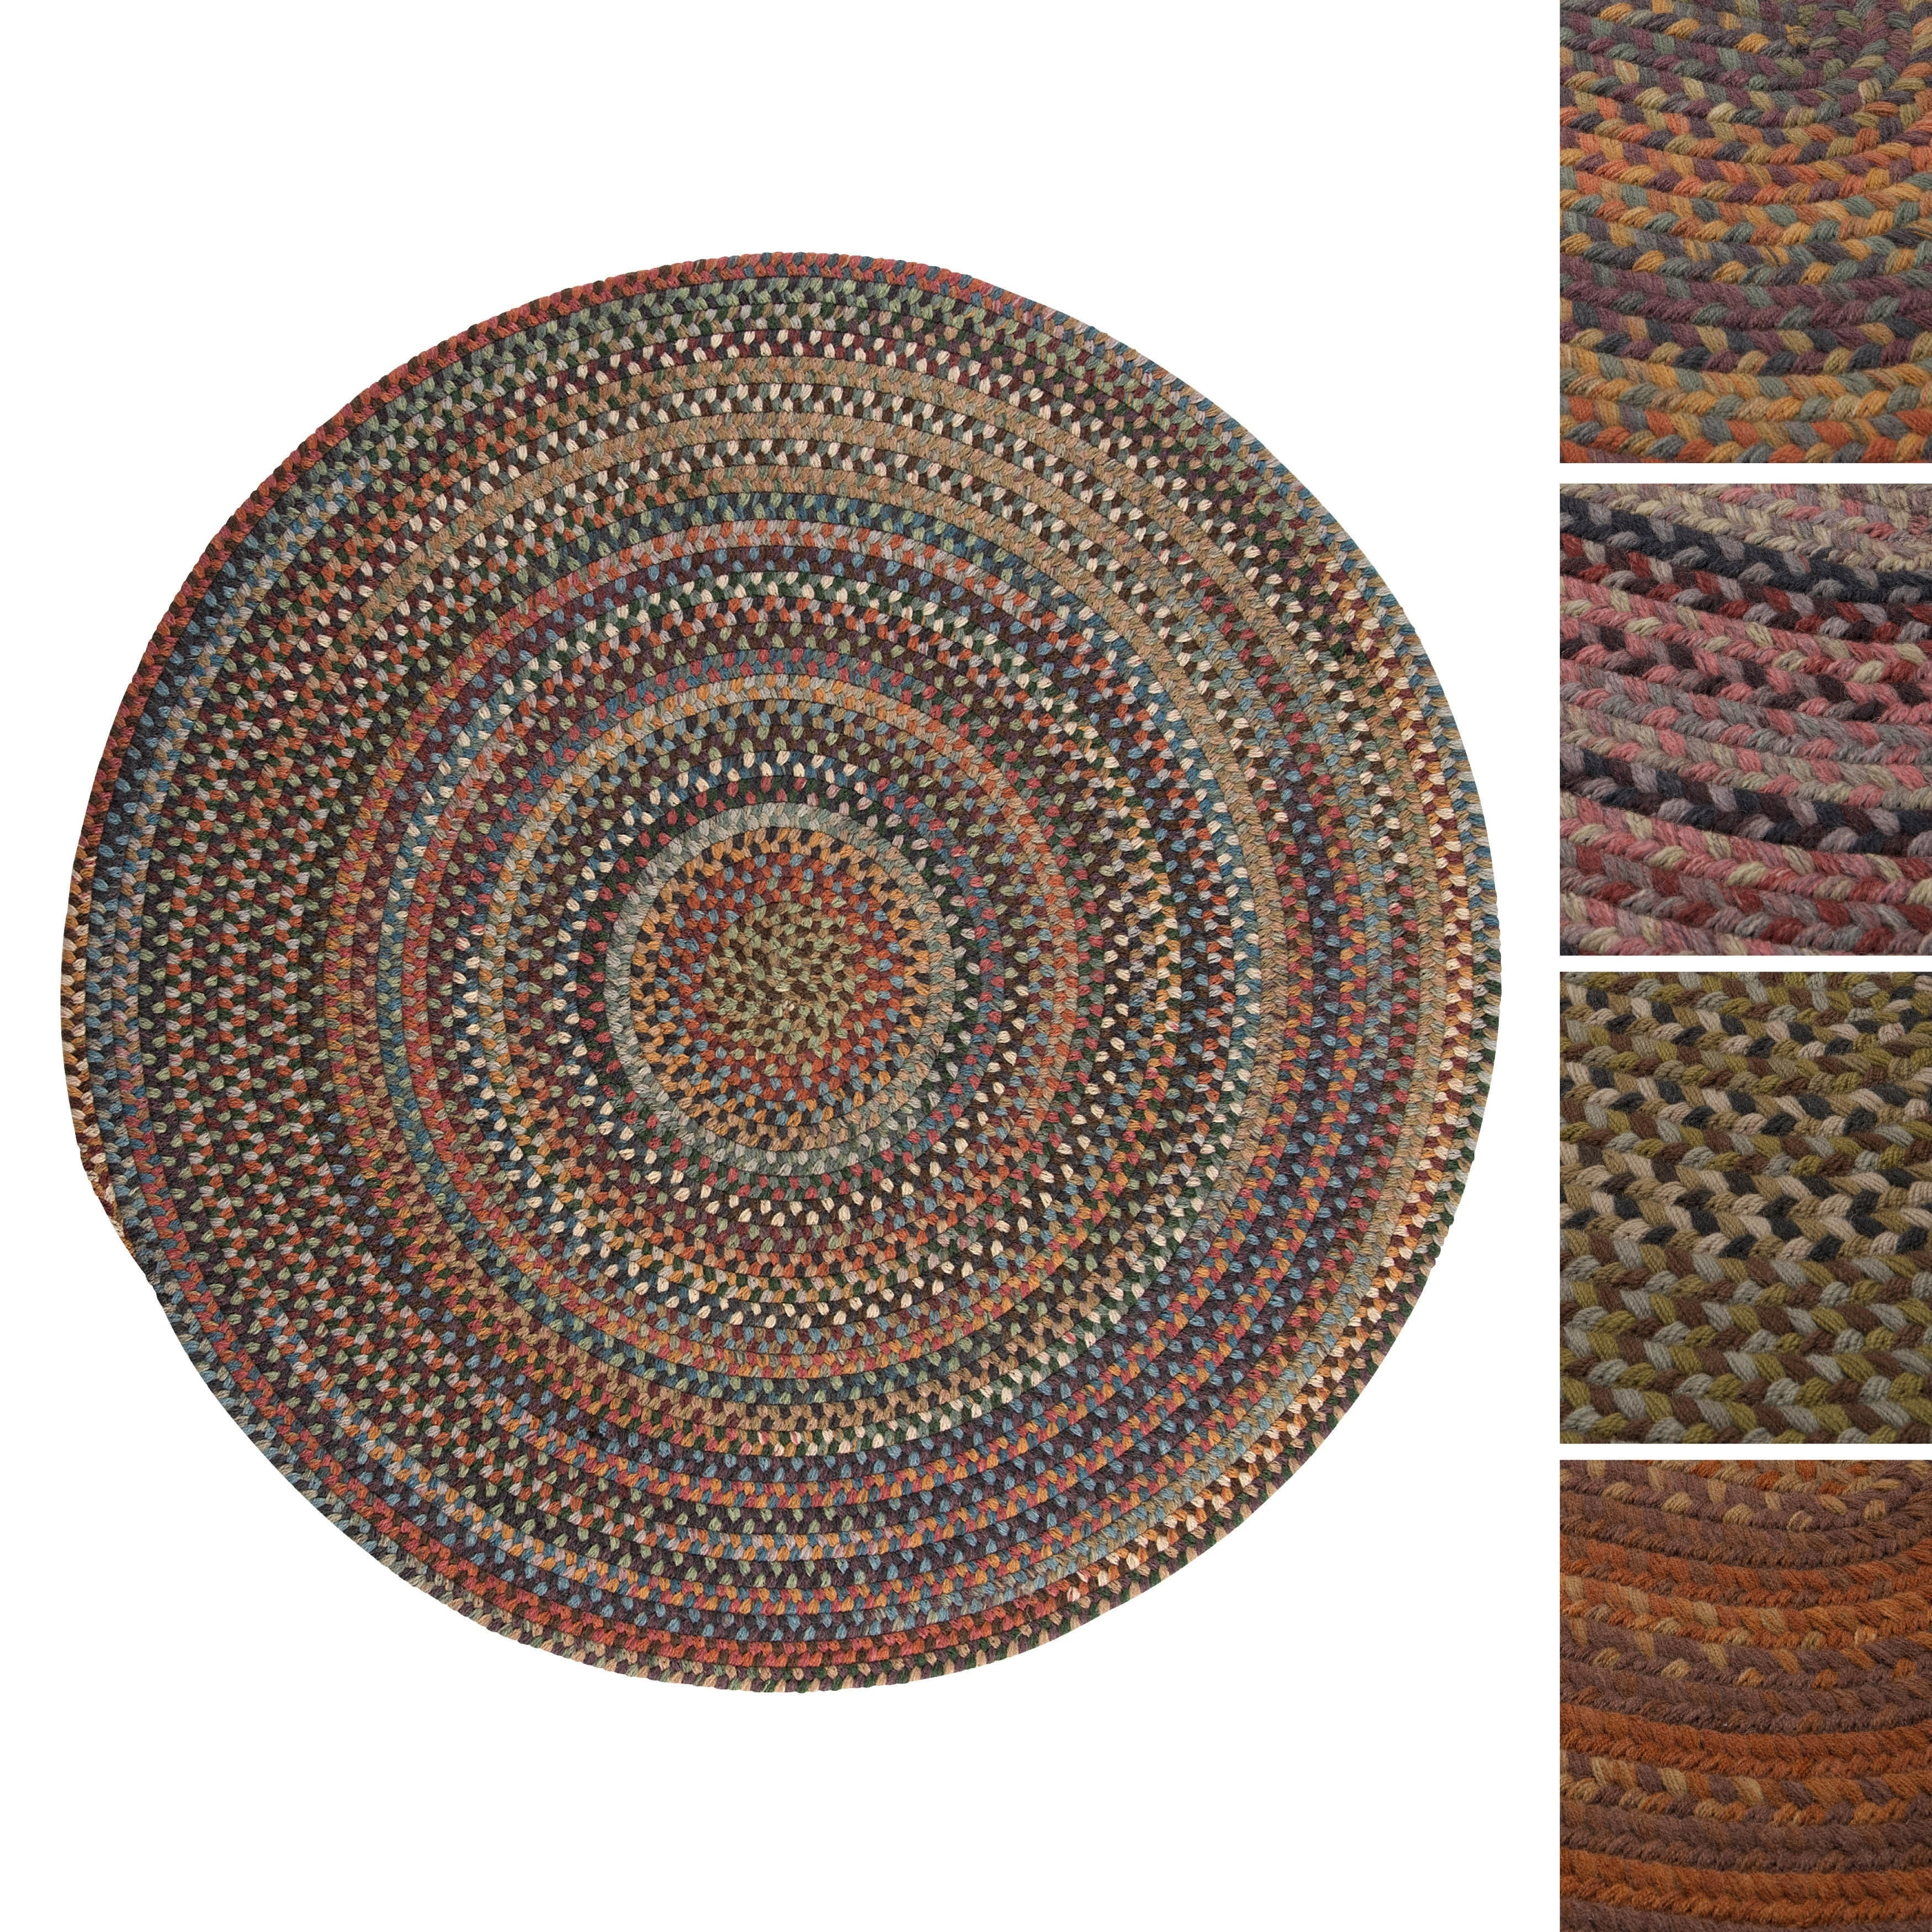 Copper Grove Coconino Round Wool Braided Rug